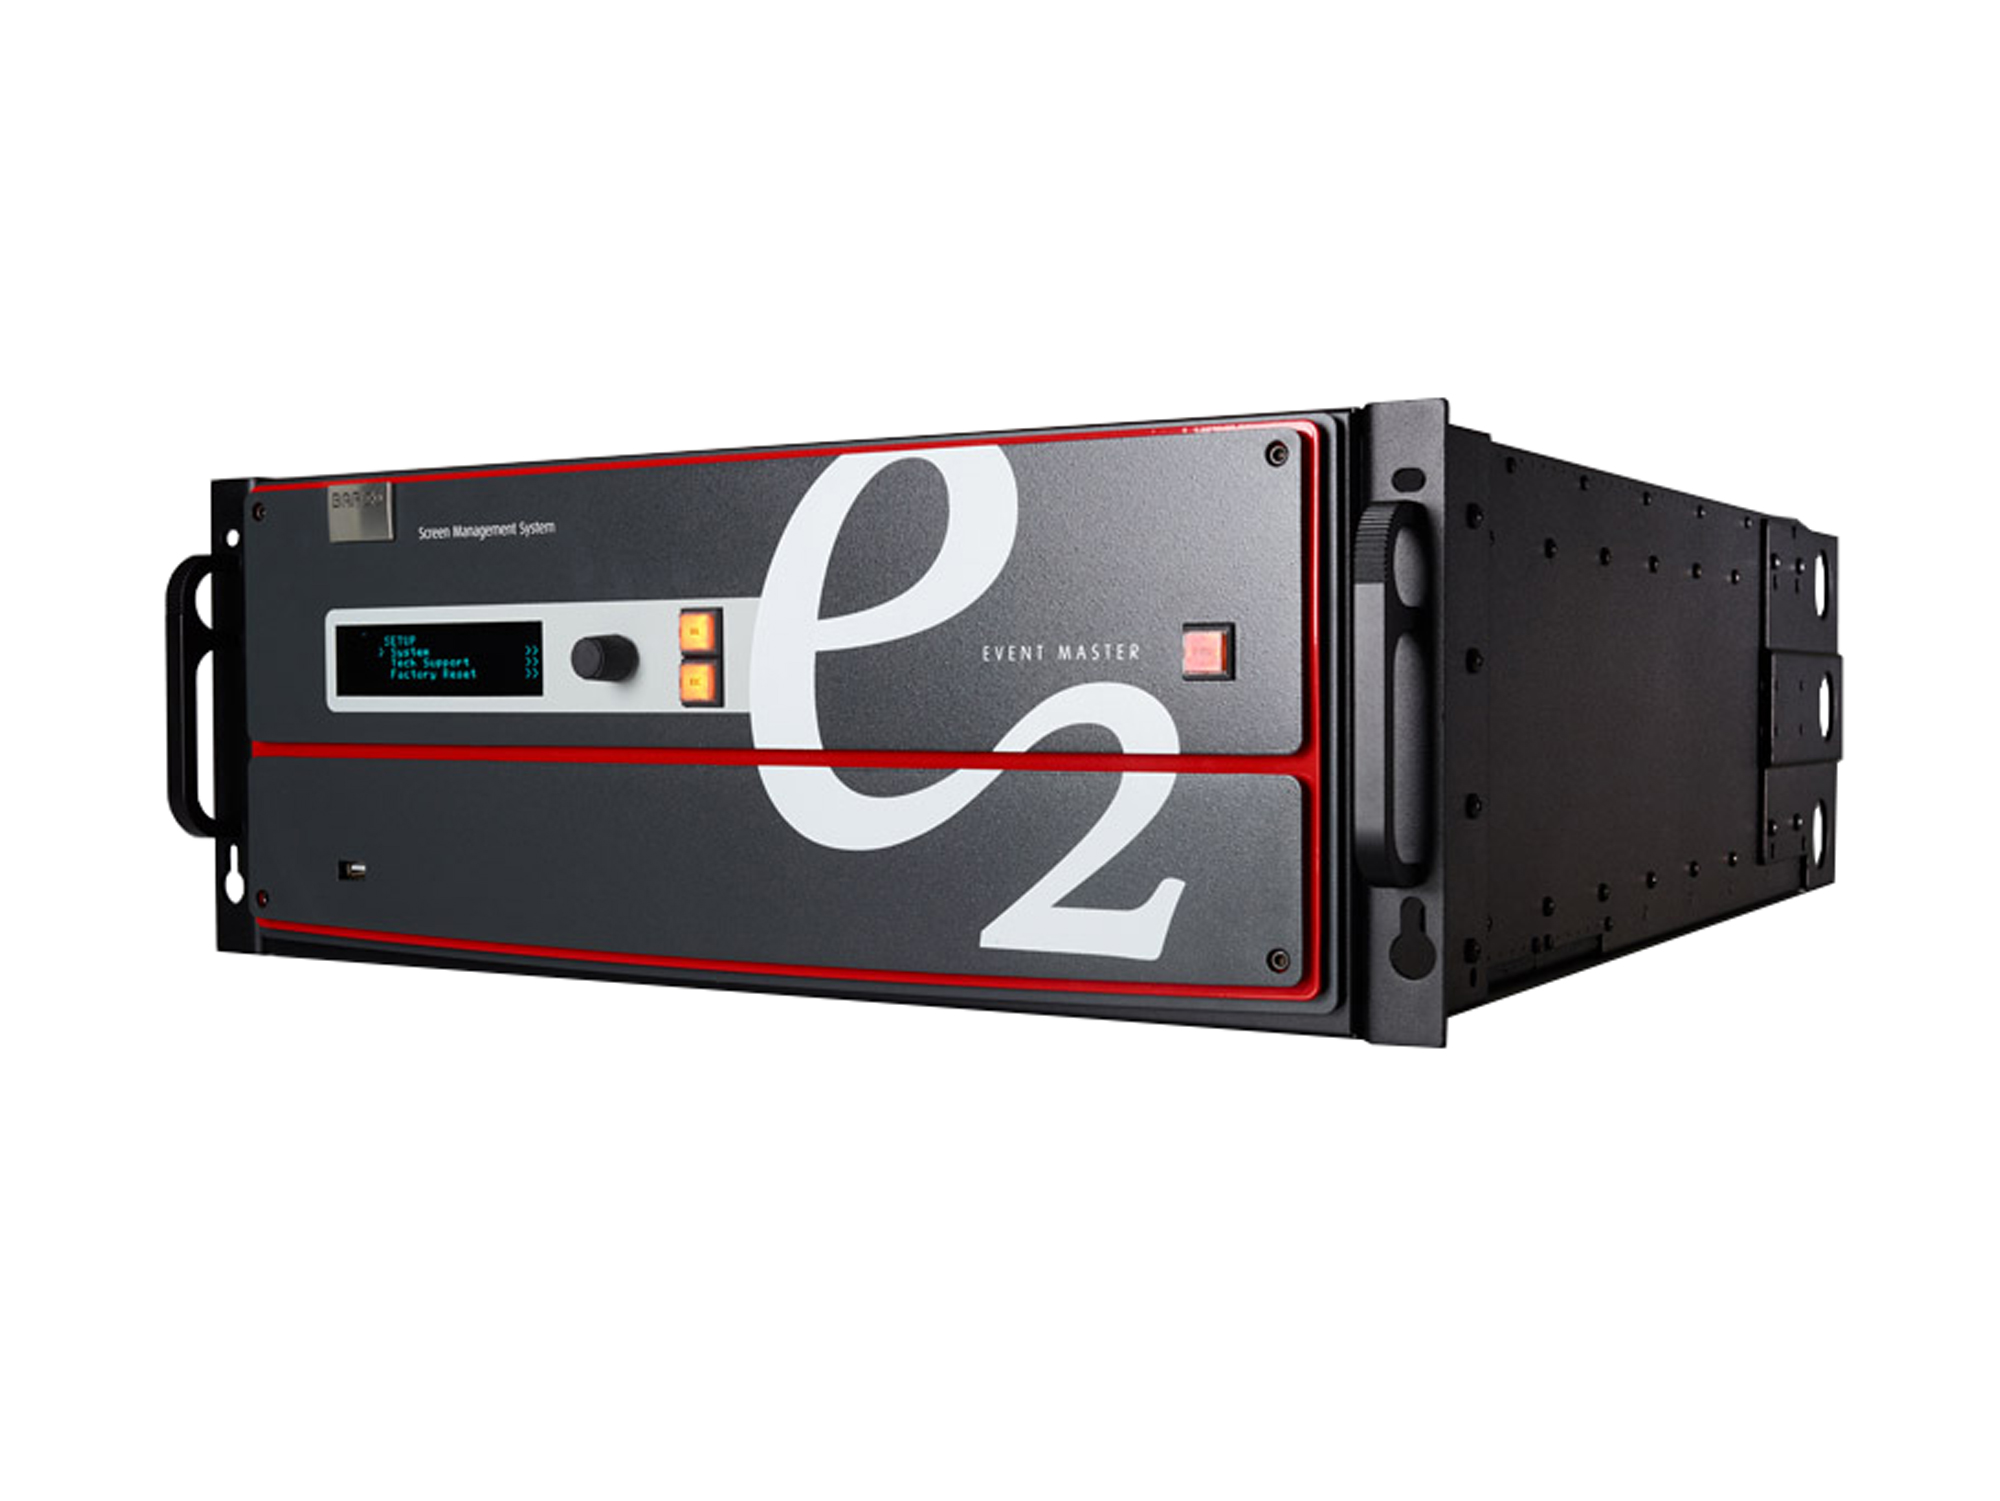 Barco E2 Screen Management System